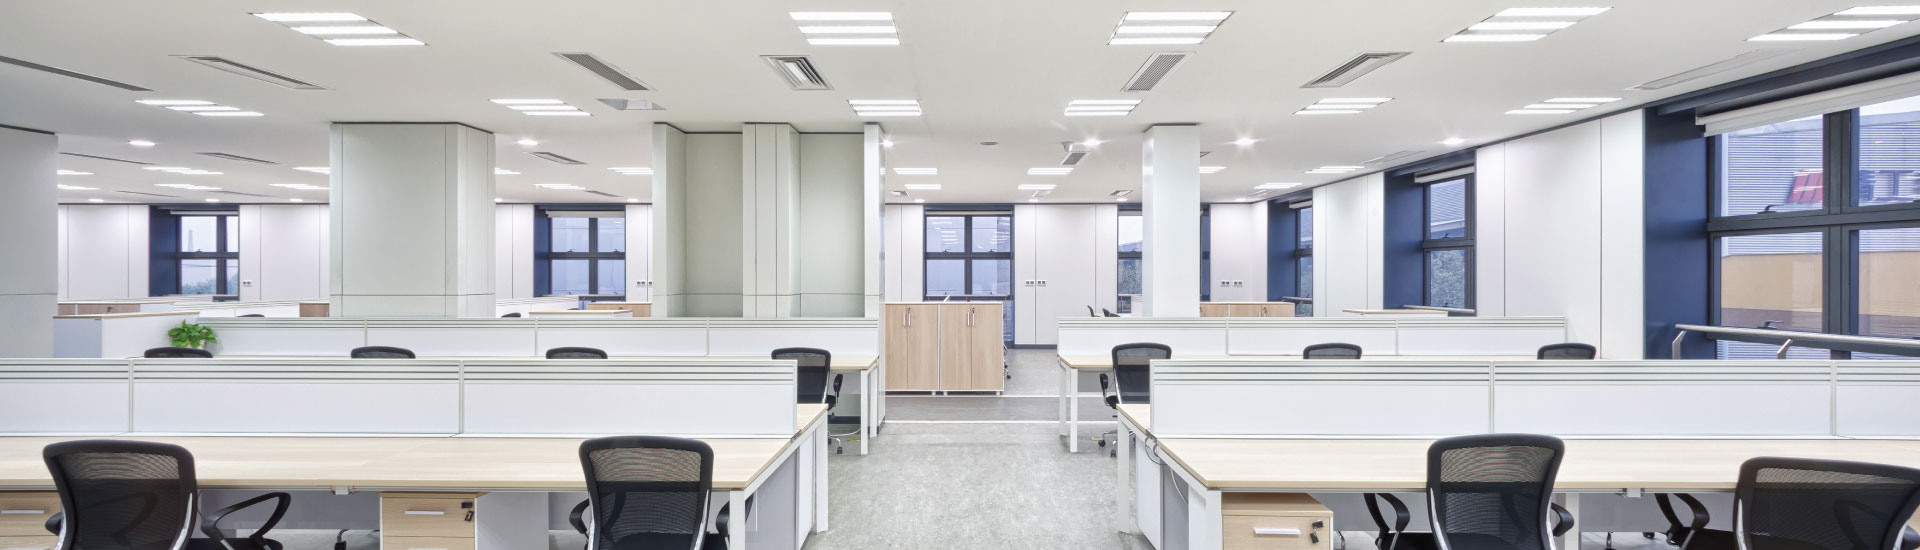 Shared office space with optimal LED commercial lighting design